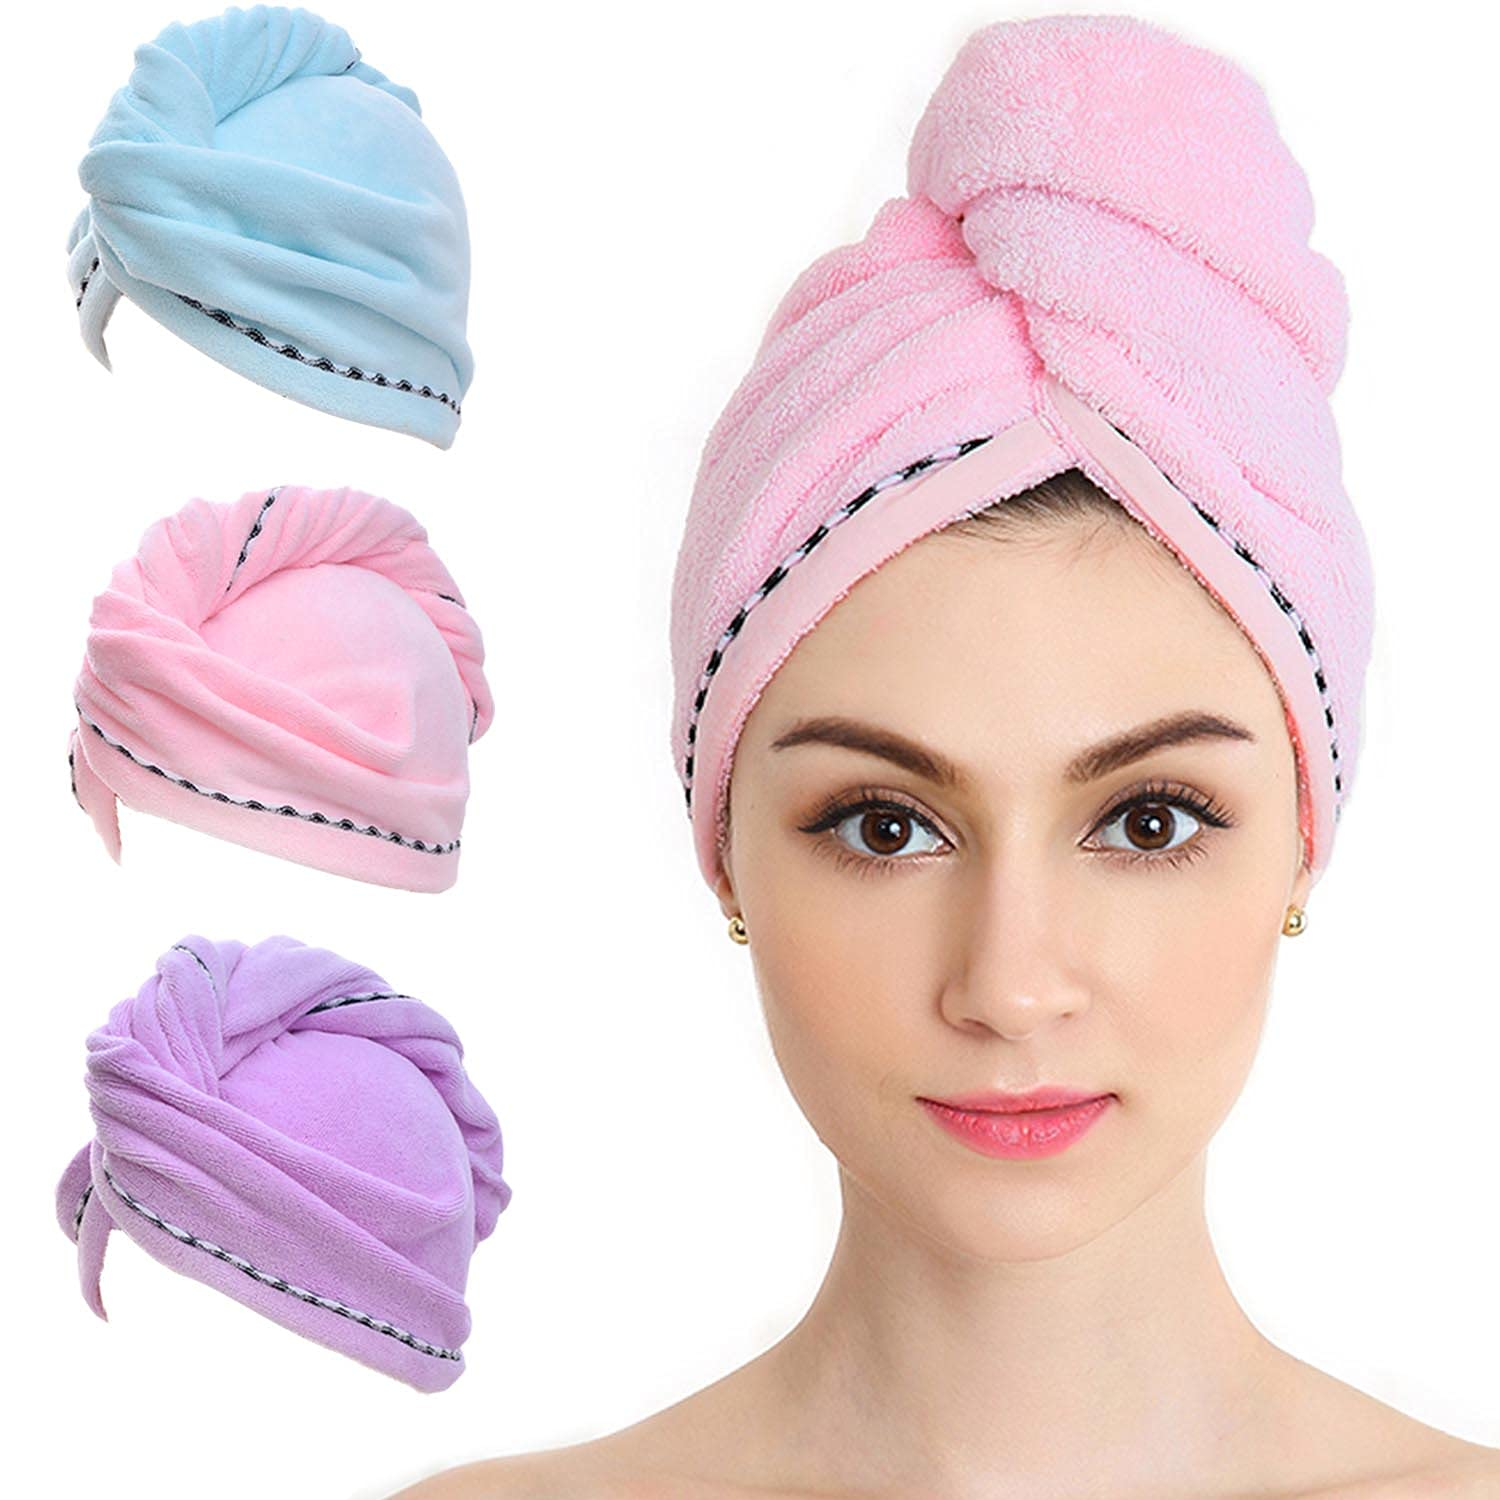 Vinker 3 Pack Hair Towel Towe Microfiber Quick El Paso Mall New Orleans Mall Wrap Drying